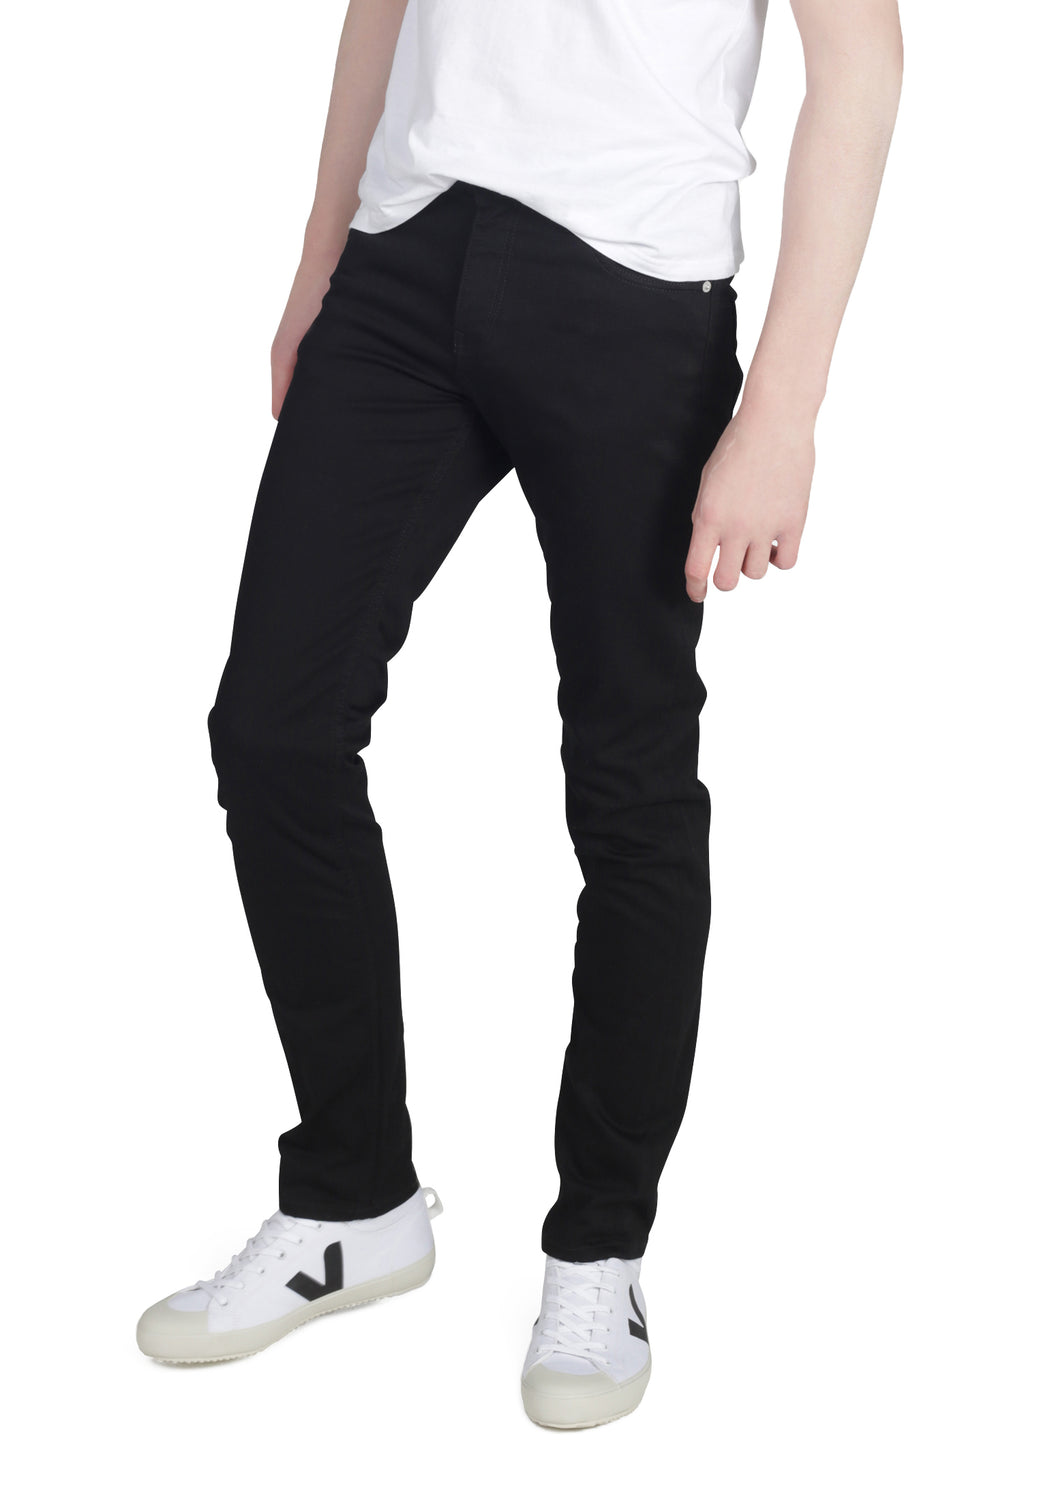 DEAN // Recycled Organic Flex Slim Fit Jeans in Black Jet - Monkee Genes Organic Jeans Denim - Organic Flex Men's Jeans Monkee Genes Official  Monkee Genes Official